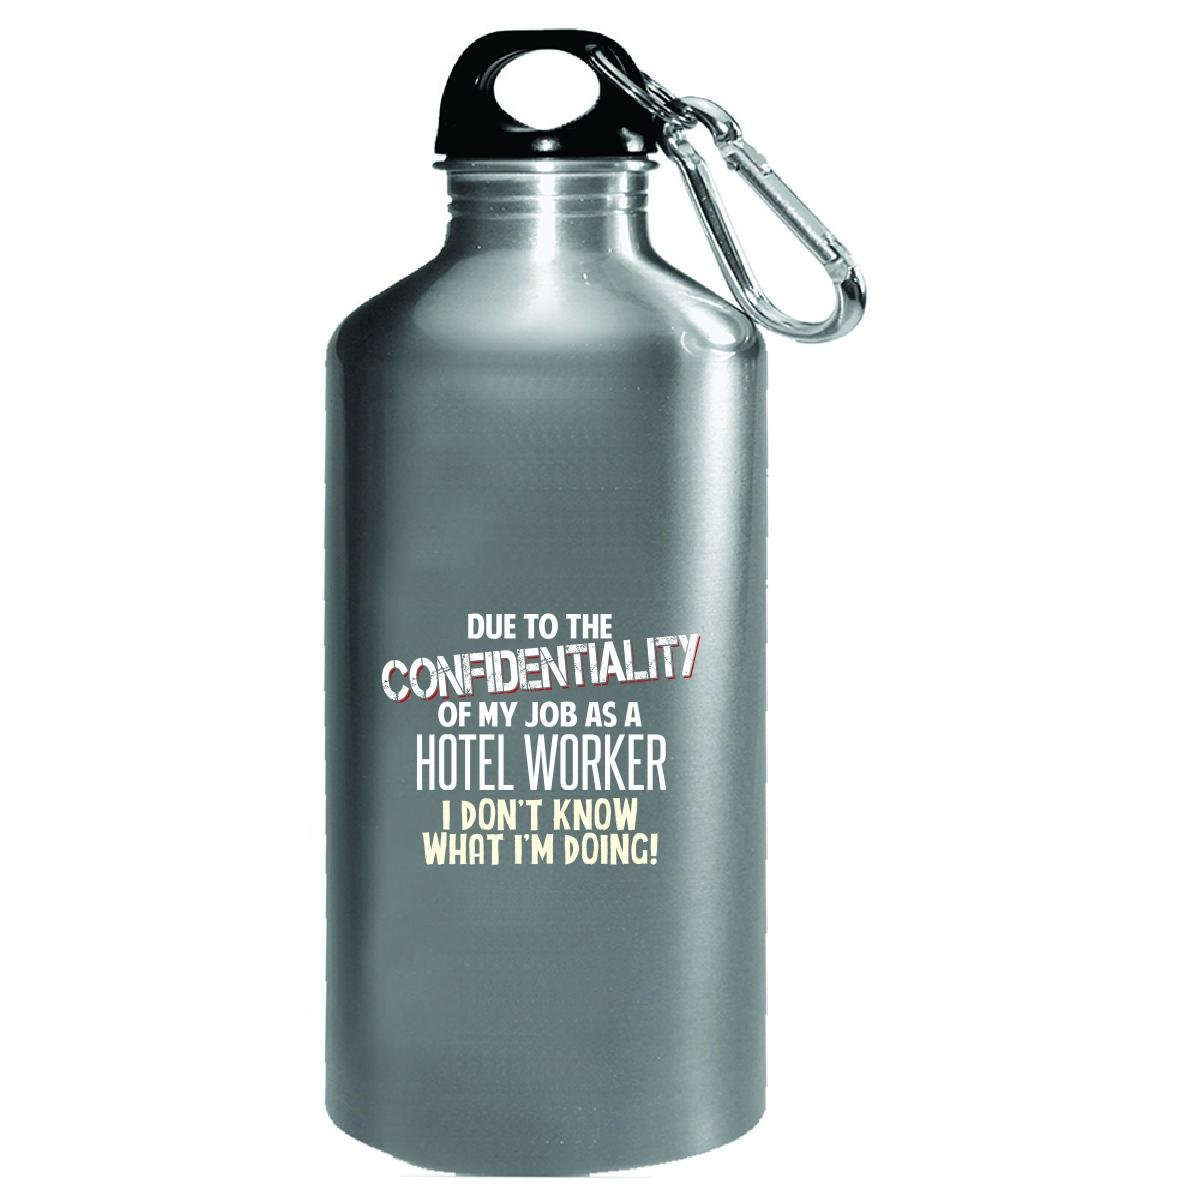 Hotel Worker Don't Know What I'm Doing Funny Coworker Gift - Water Bottle